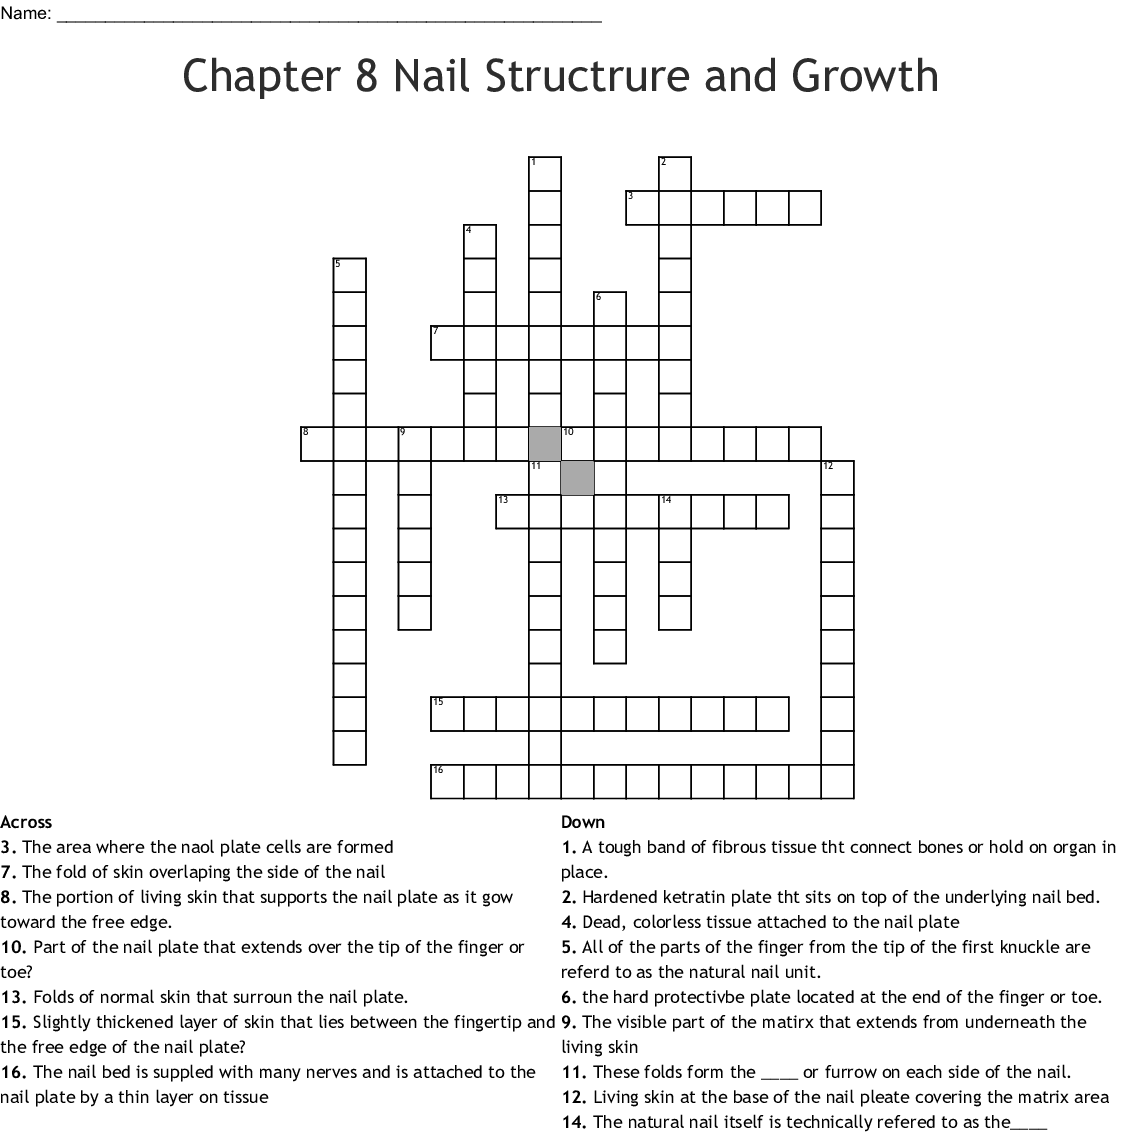 Chapter 8 Nail Structrure And Growth Crossword